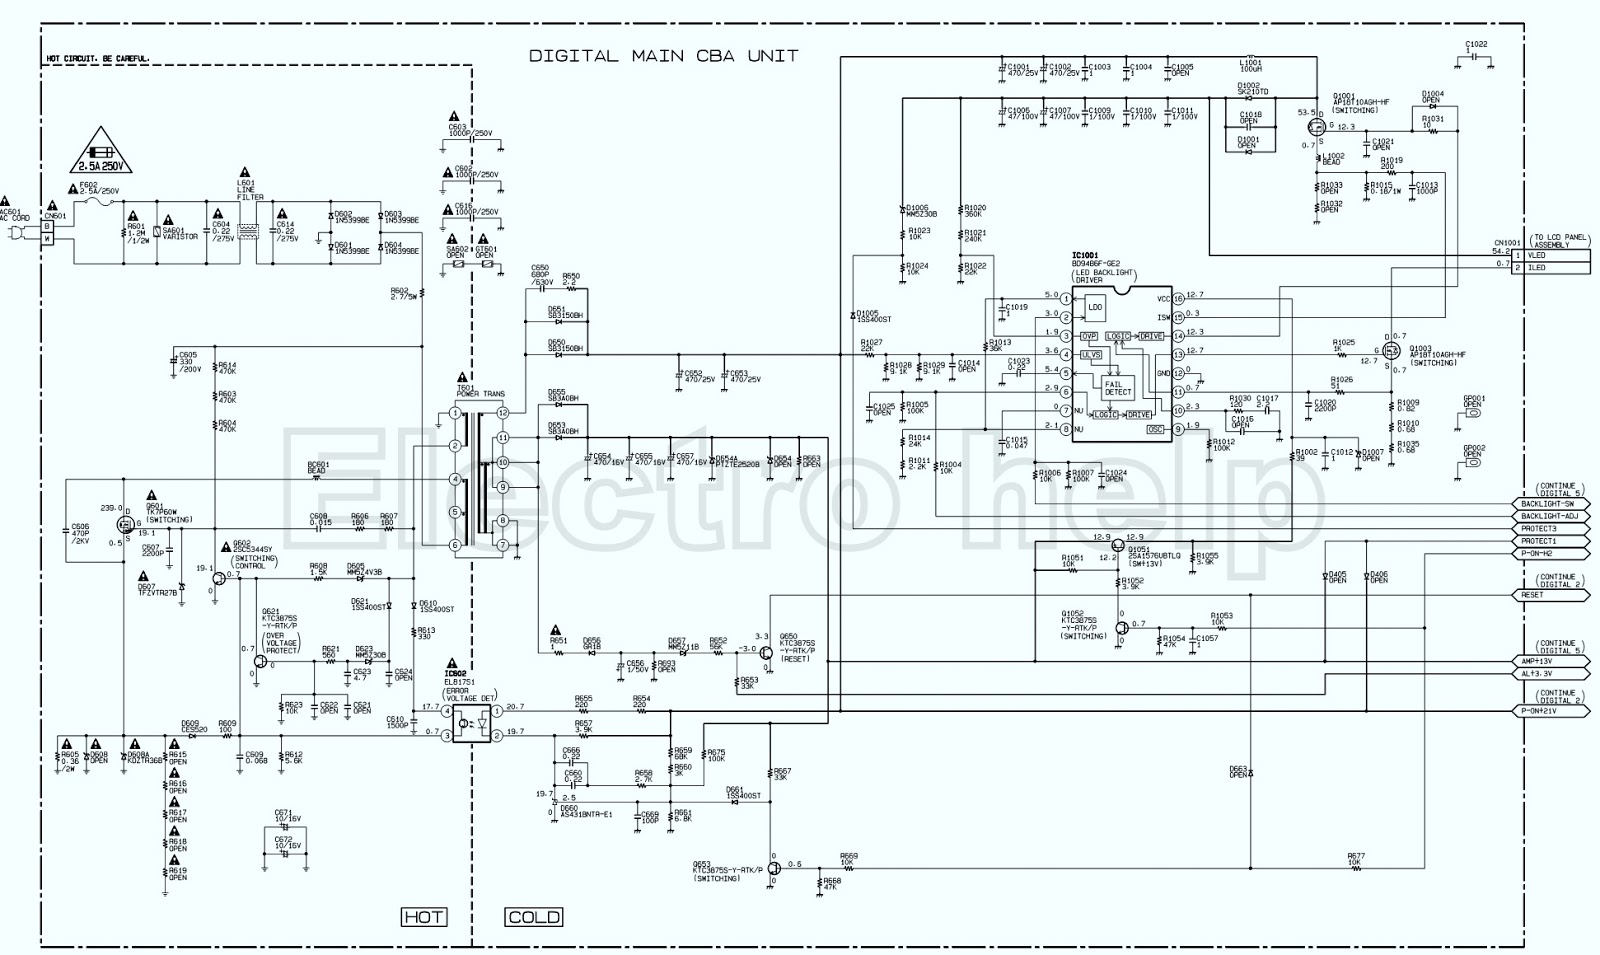 smps schematic diagram 2008 chrysler sebring wiring philips led lcd tv type g circuit